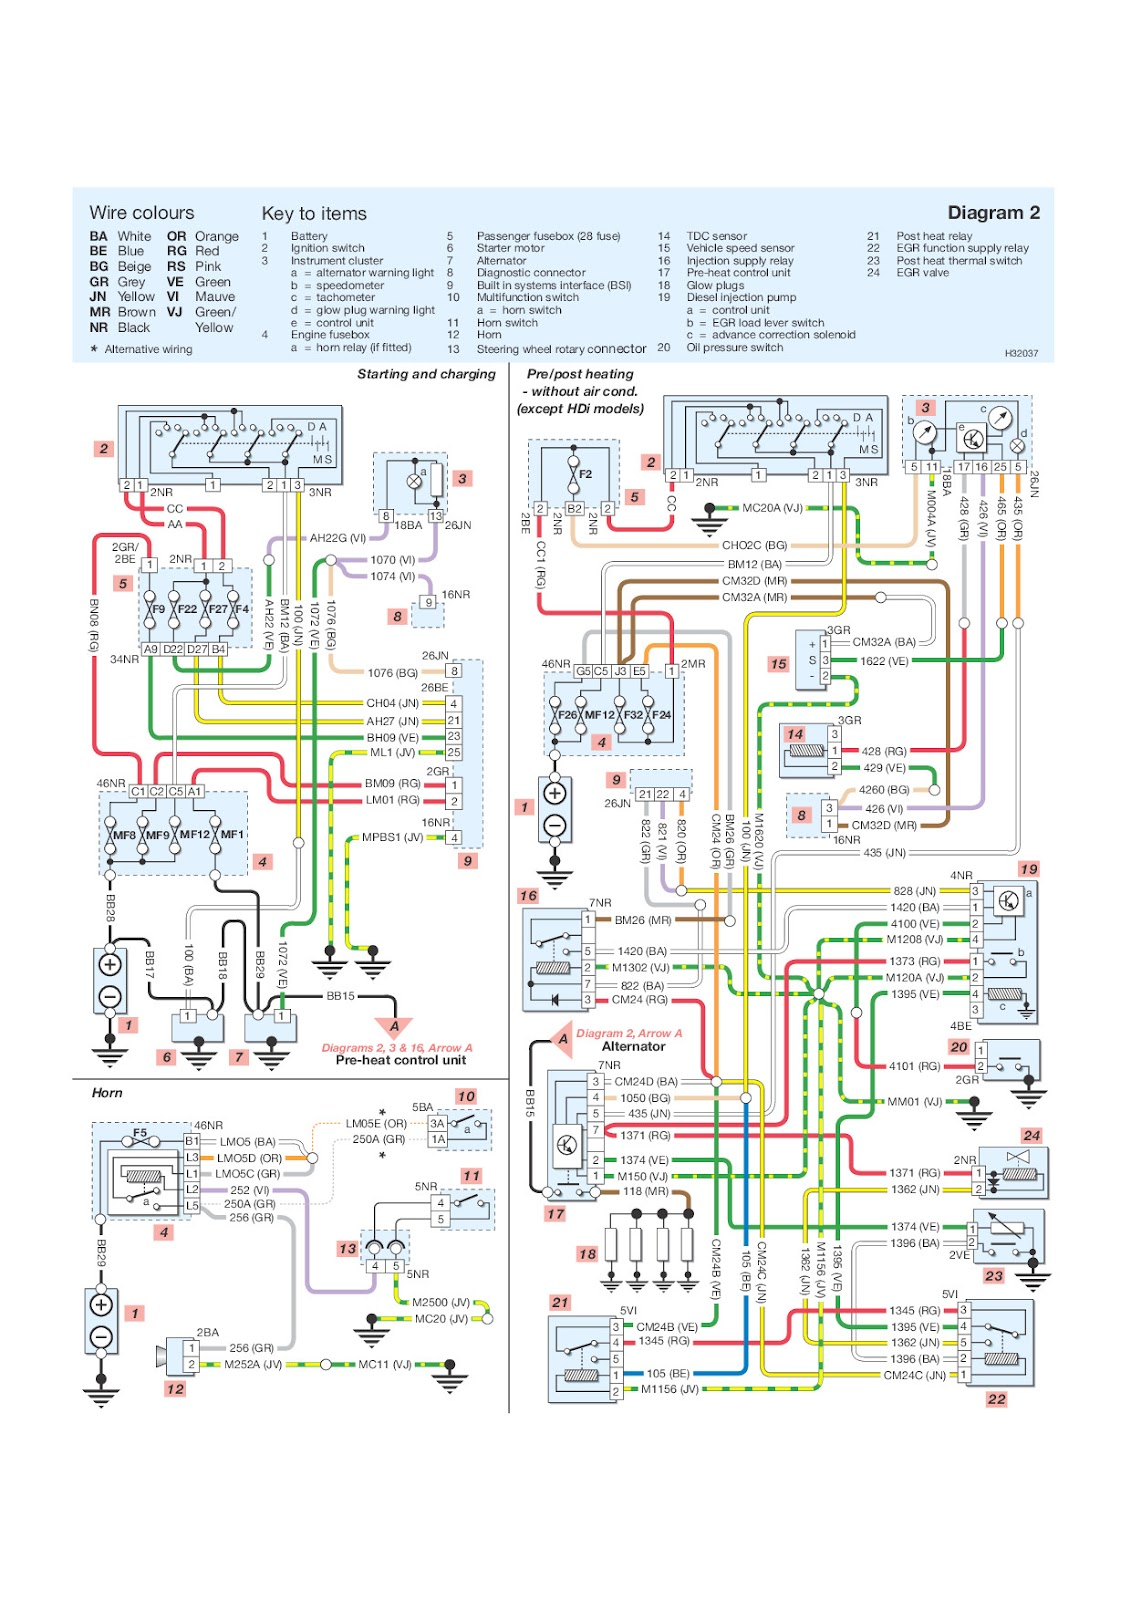 Horn Civic Wiring Diagram Throughout Picturesque 1995 Honda Ex Fuse Box Peugeot Trusted Schematics Diagrams U Com Harley Davidson 1131x1600